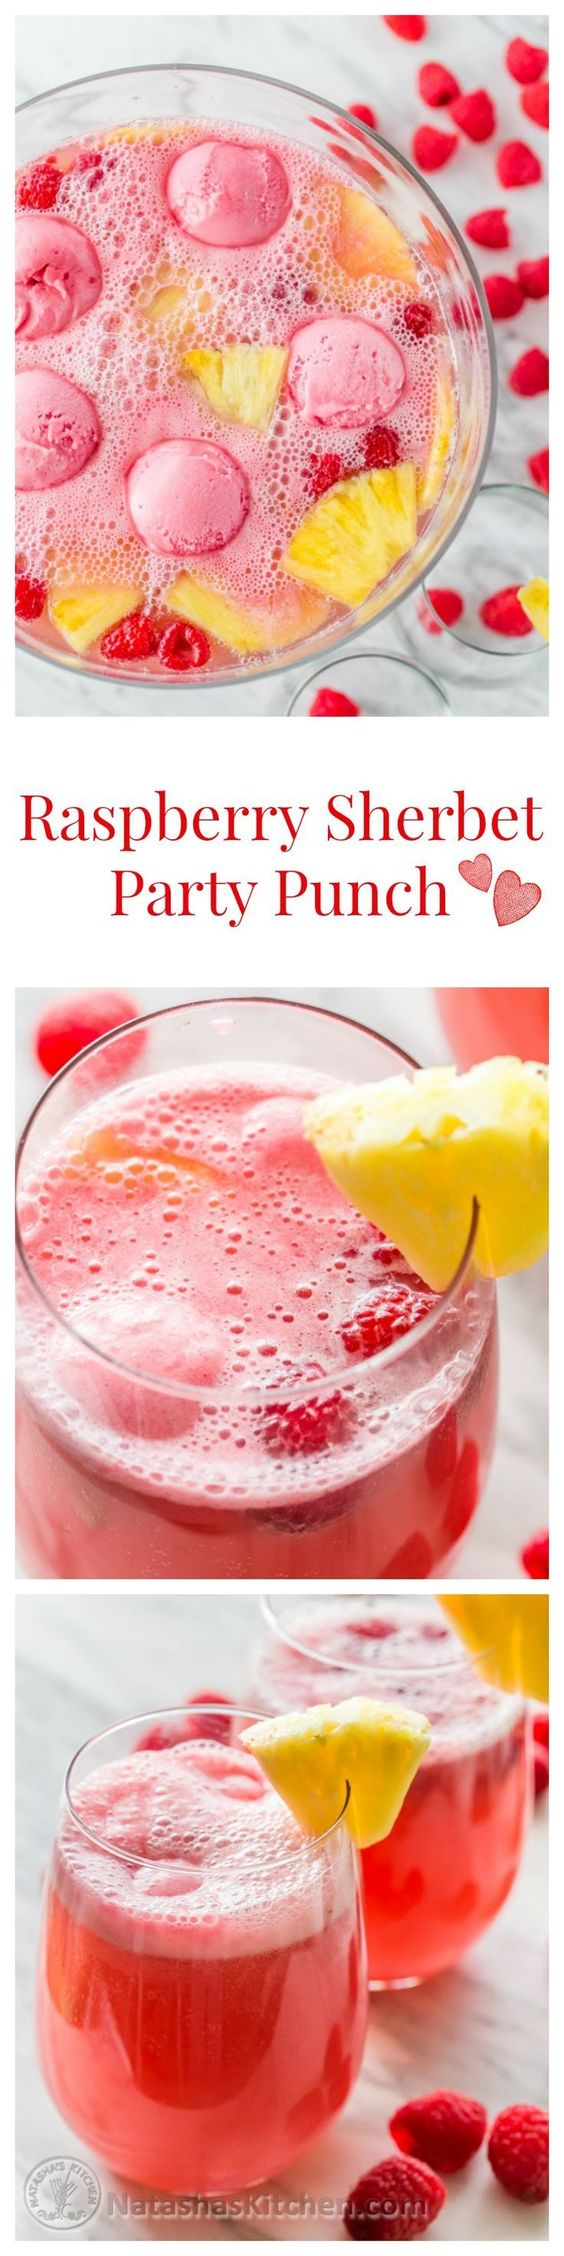 Raspberry Sherbet Party Punch Recipe via Natasha's Kitchen - This Sherbet Party Punch is perfect for potlucks, baby showers & other gatherings! #mocktails #virgindrinks #alcoholfreedrinks #nonalcoholicdrinks #familyfriendlydrinks #partypunch #partydrinks #newyearseve #partydrinkrecipes